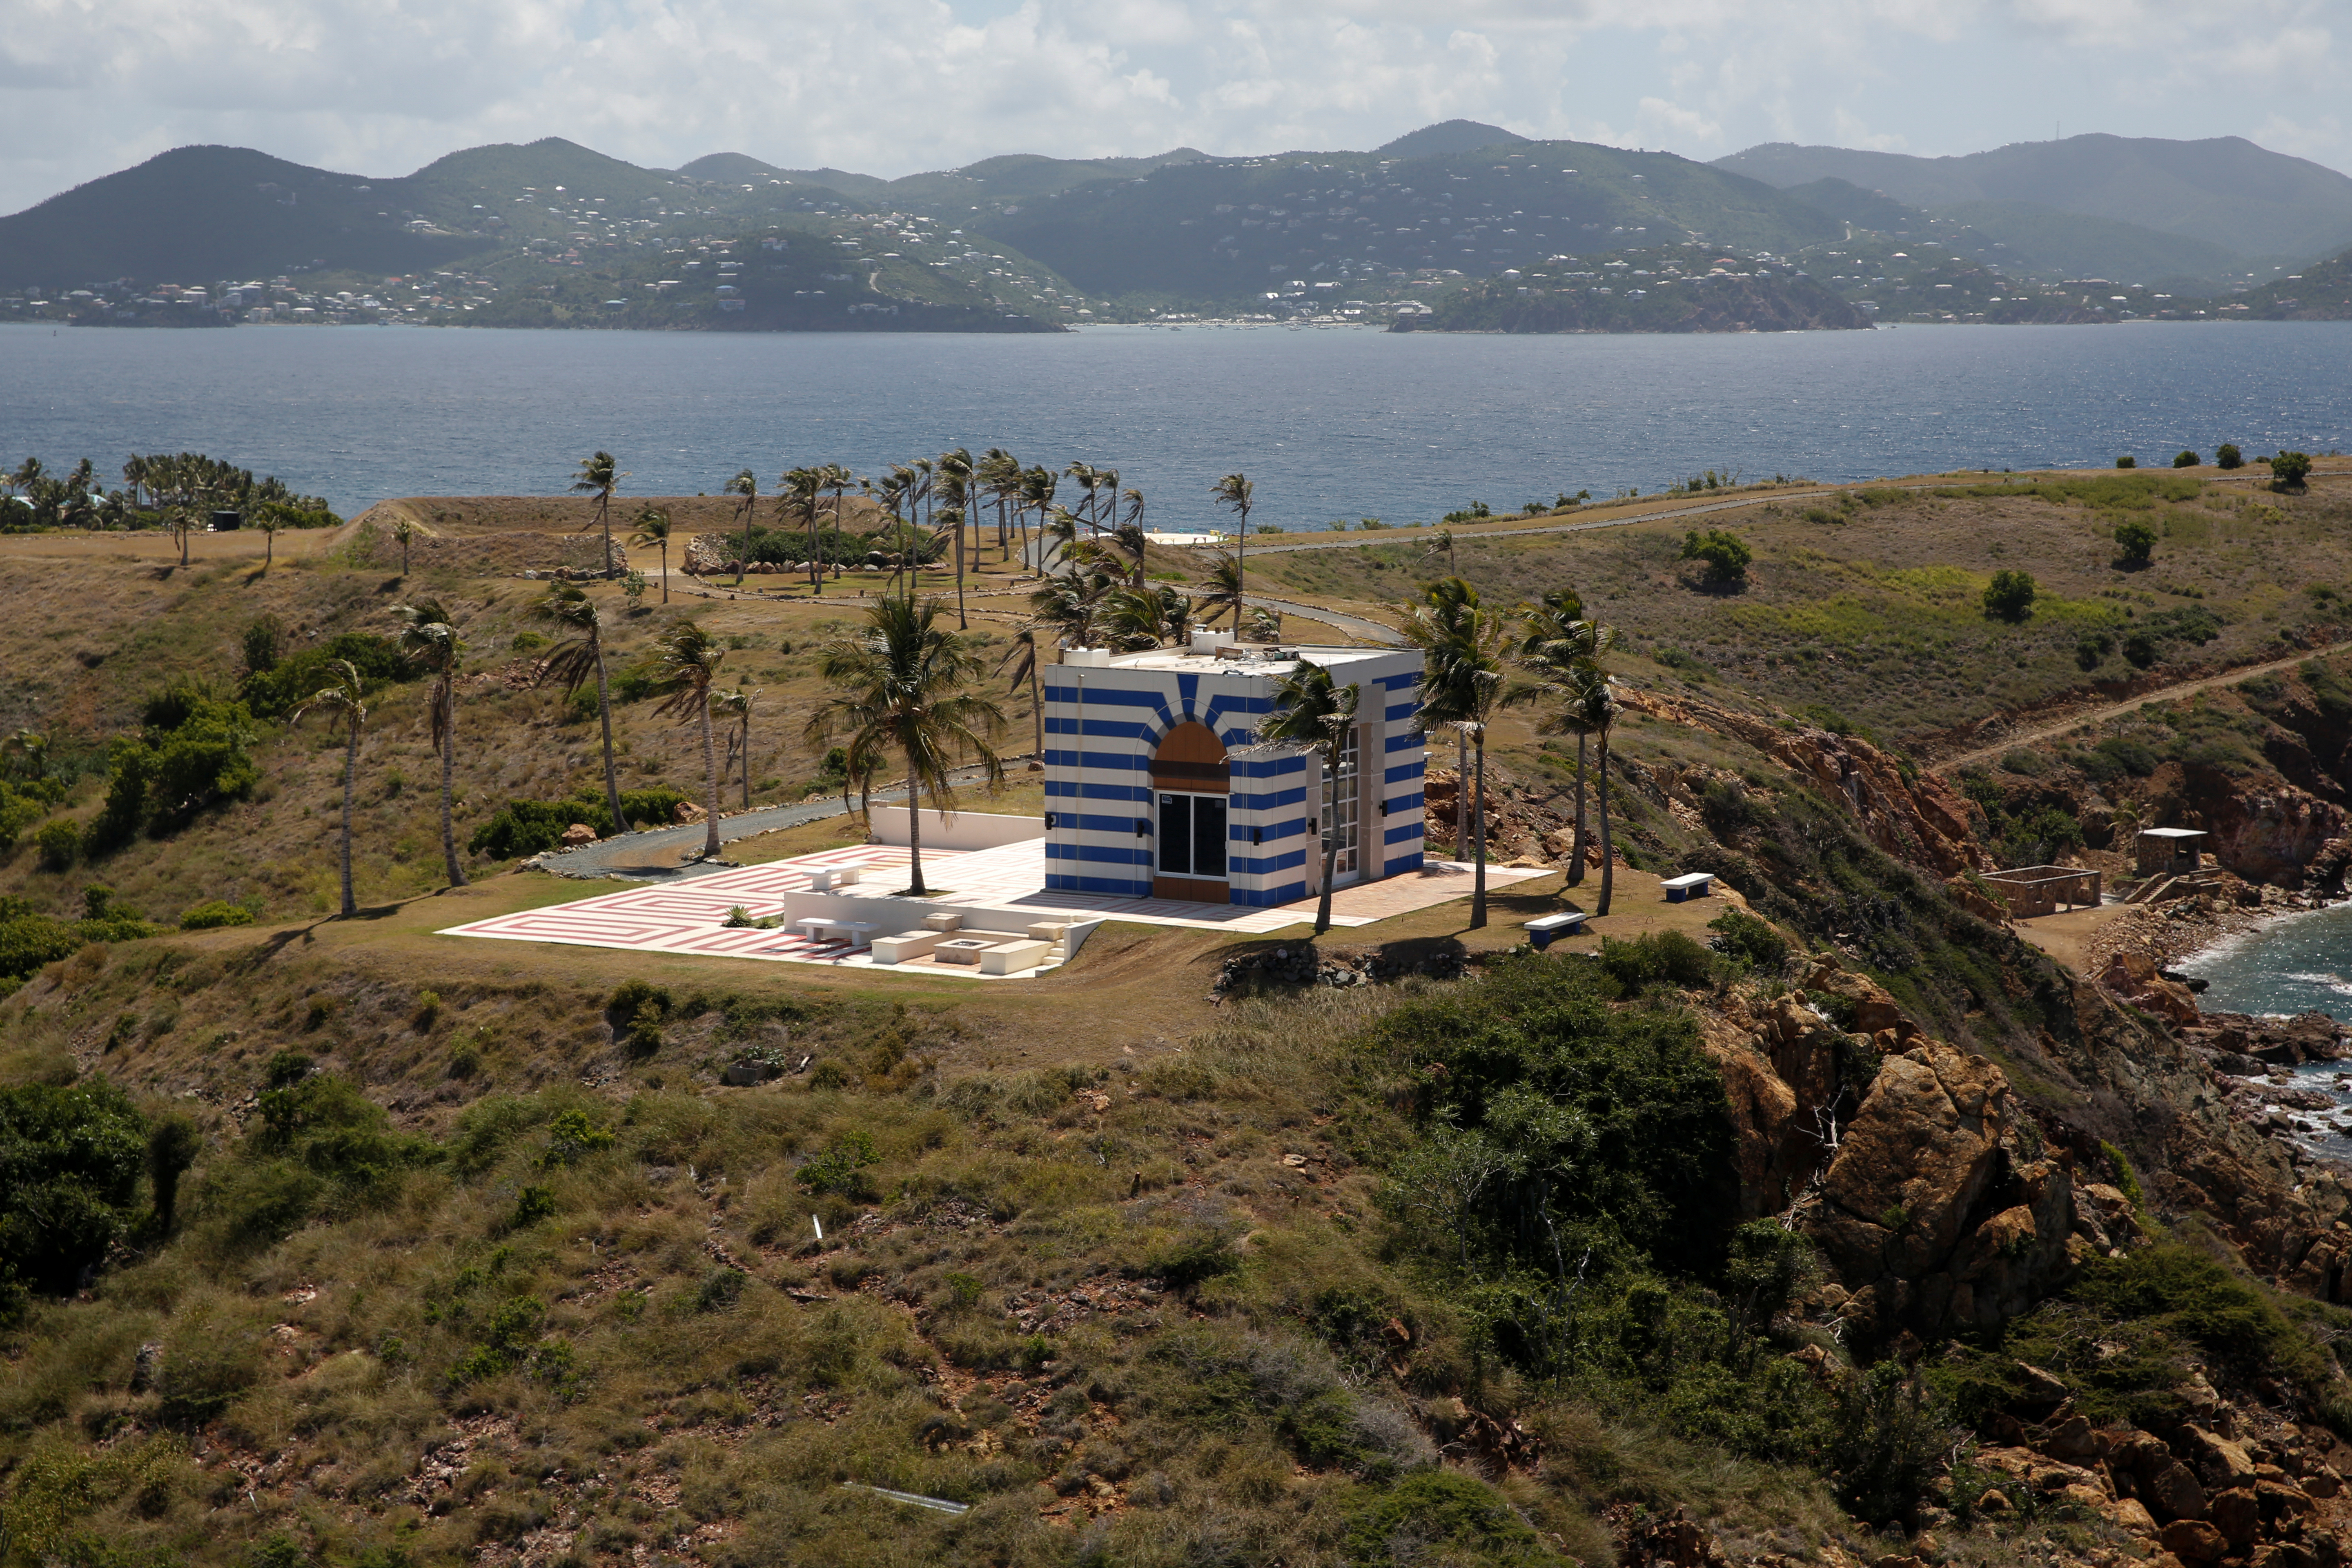 A building at Little St. James Island, one of the properties of financier Jeffrey Epstein, is seen in an aerial view, near Charlotte Amalie, St. Thomas, U.S. Virgin Islands July 21, 2019. (REUTERS/Marco Bello)